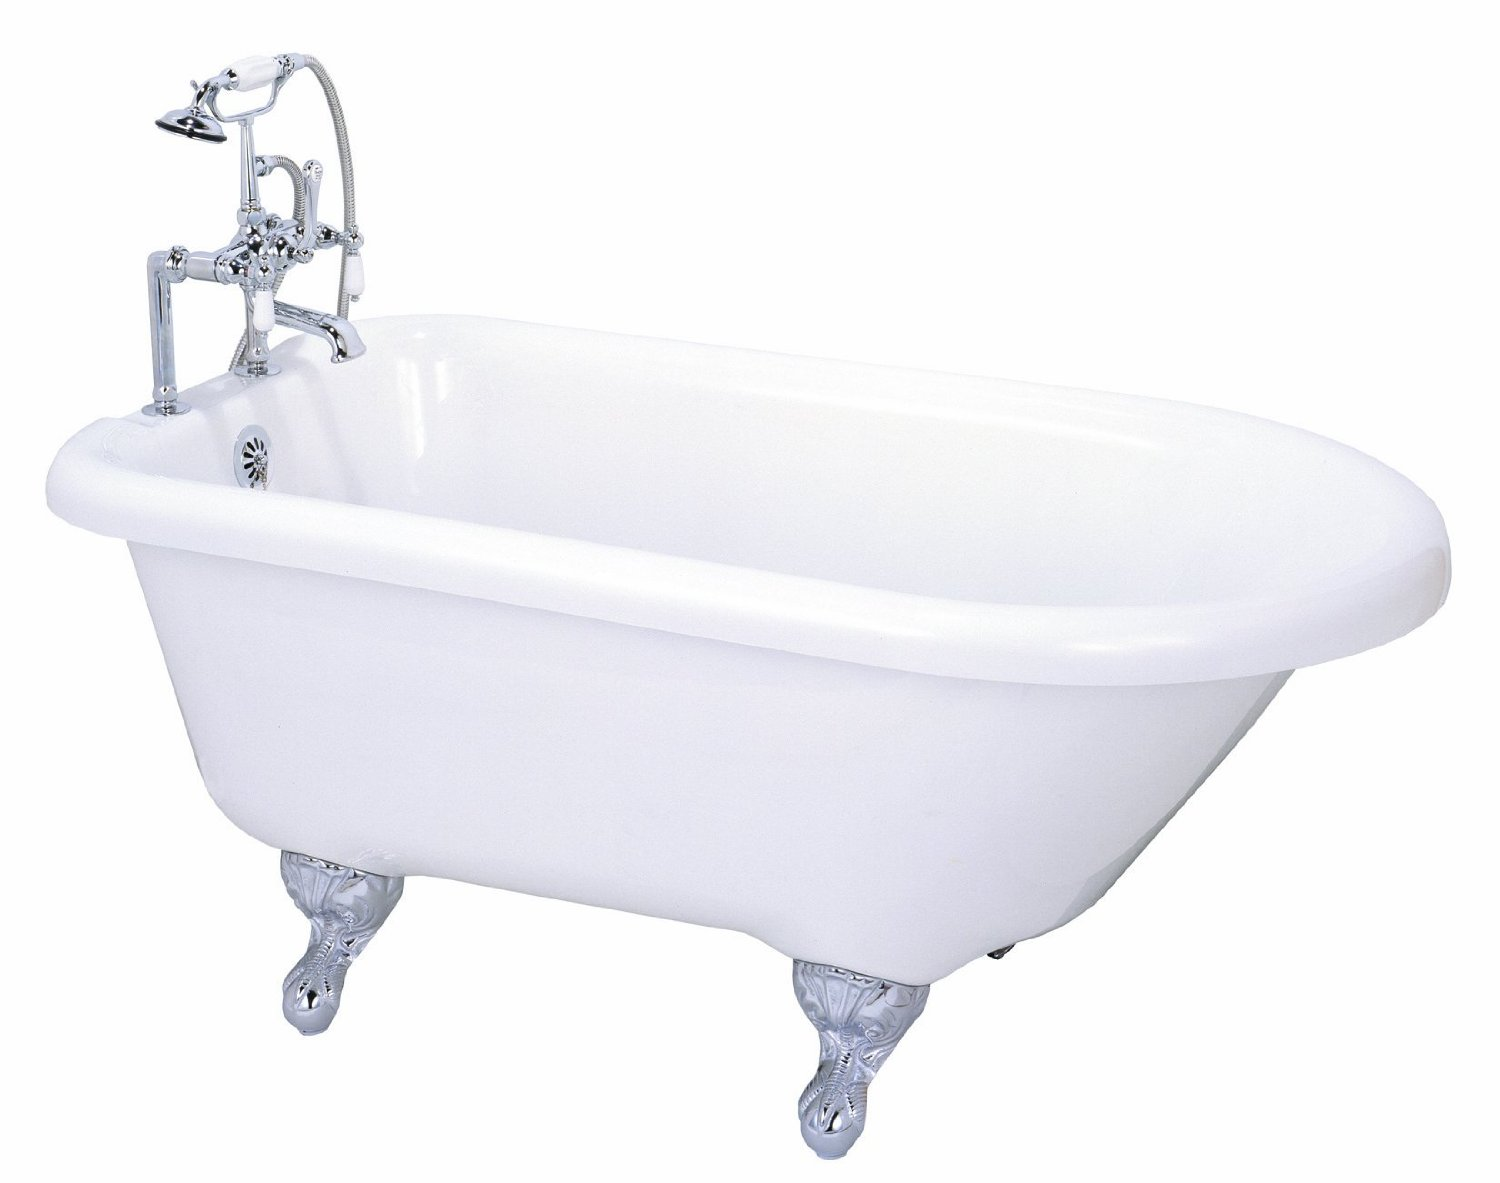 55u2033 Roll Top Clawfoot Tub From Elizabethan Classics. Small Bathtub Ideas